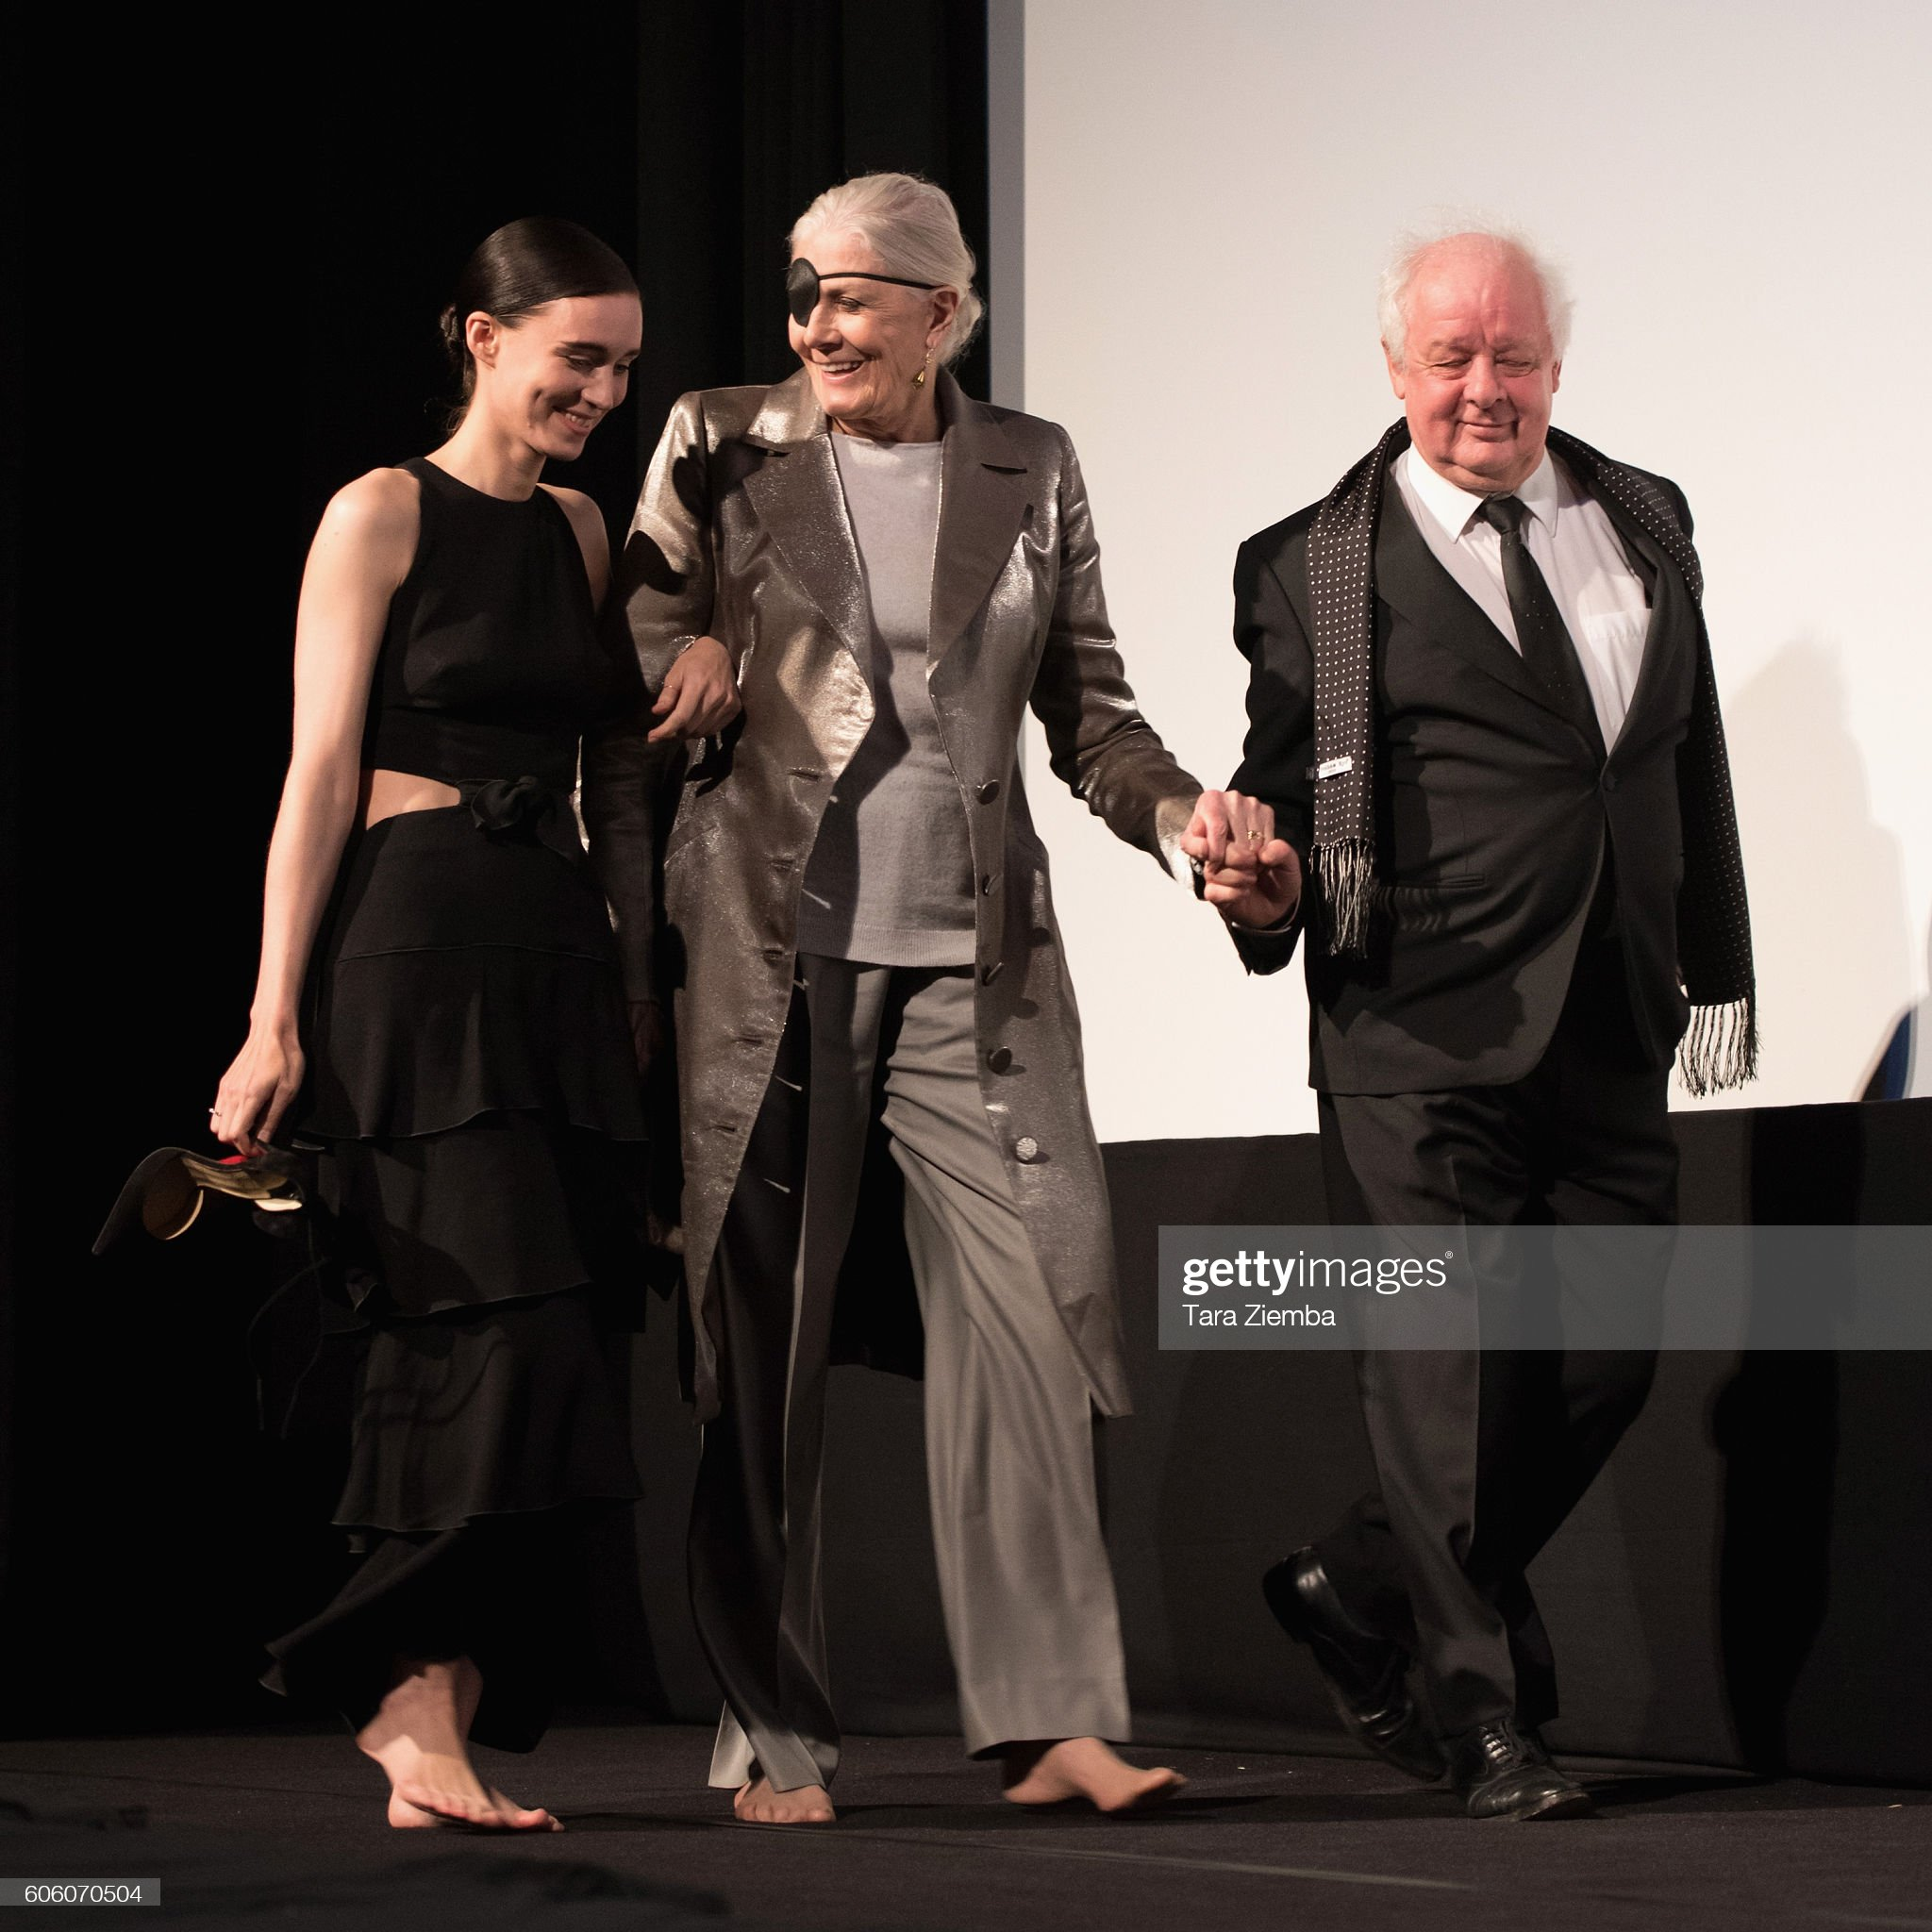 https://media.gettyimages.com/photos/actress-rooney-mara-actress-vanessa-redgrave-and-director-jim-attend-picture-id606070504?s=2048x2048